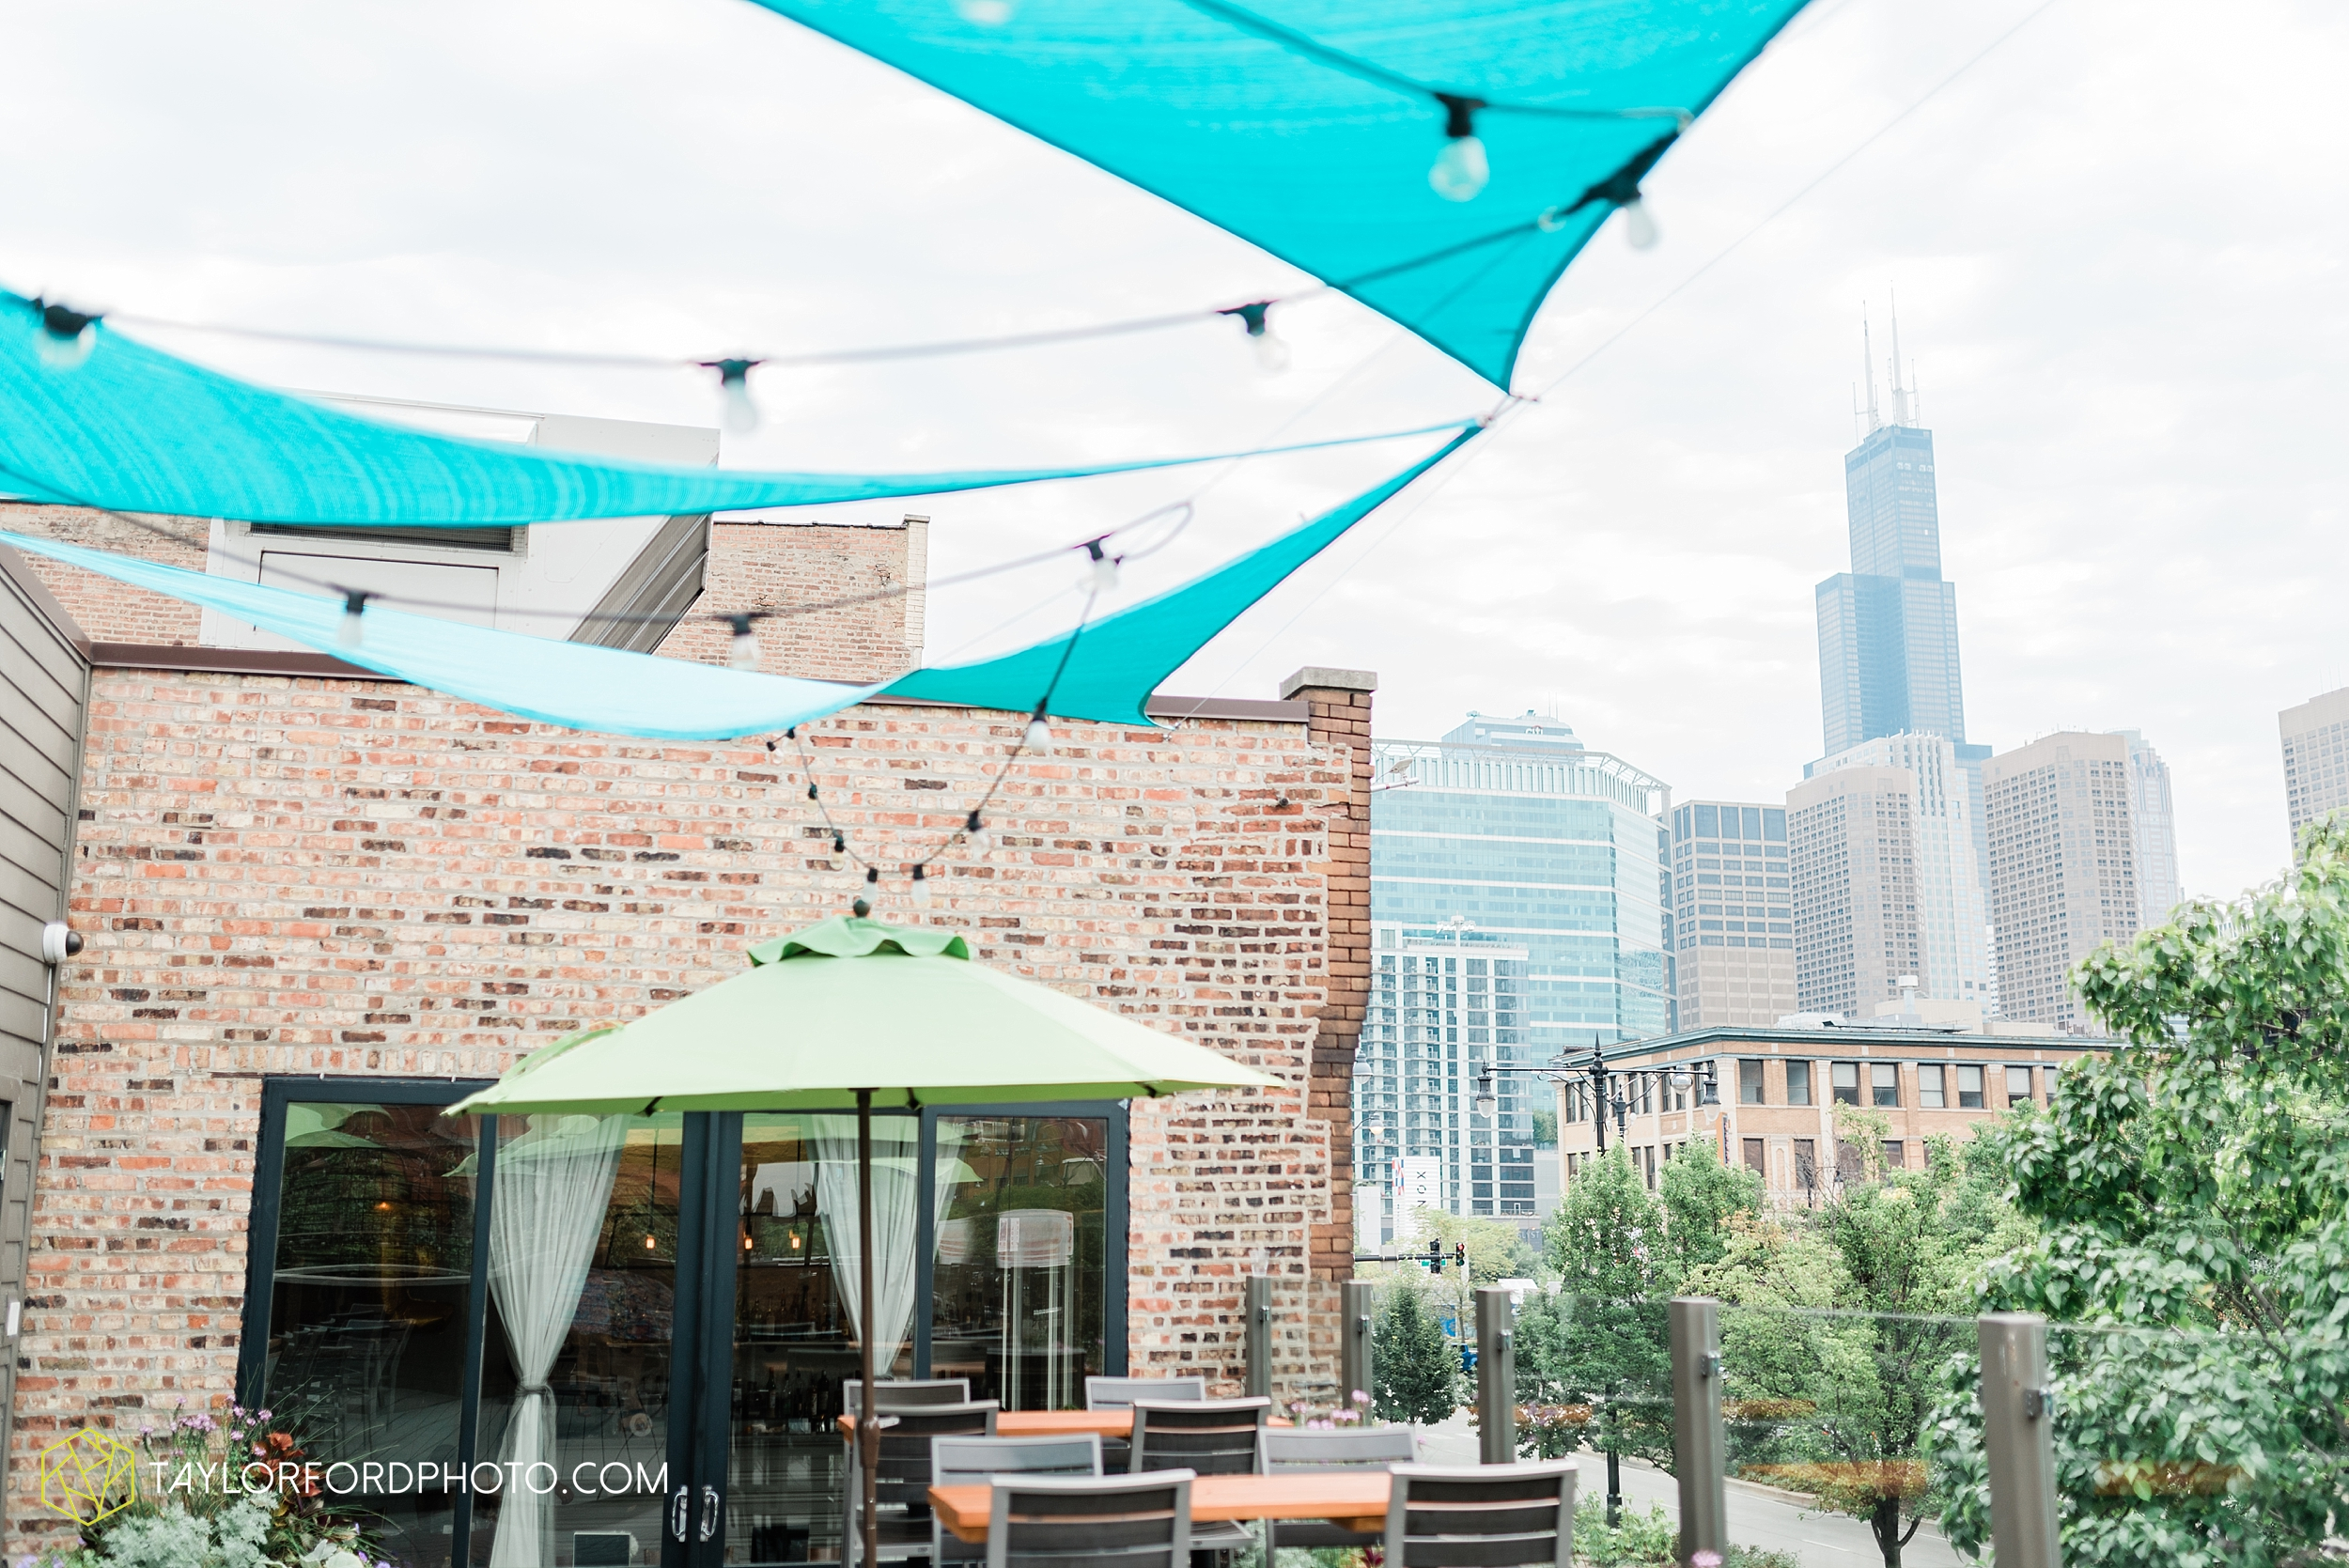 chicago-illinois-bridal-shower-little-goat-diner-west-loop-wedding-photographer-taylor-ford-photographer_8786.jpg